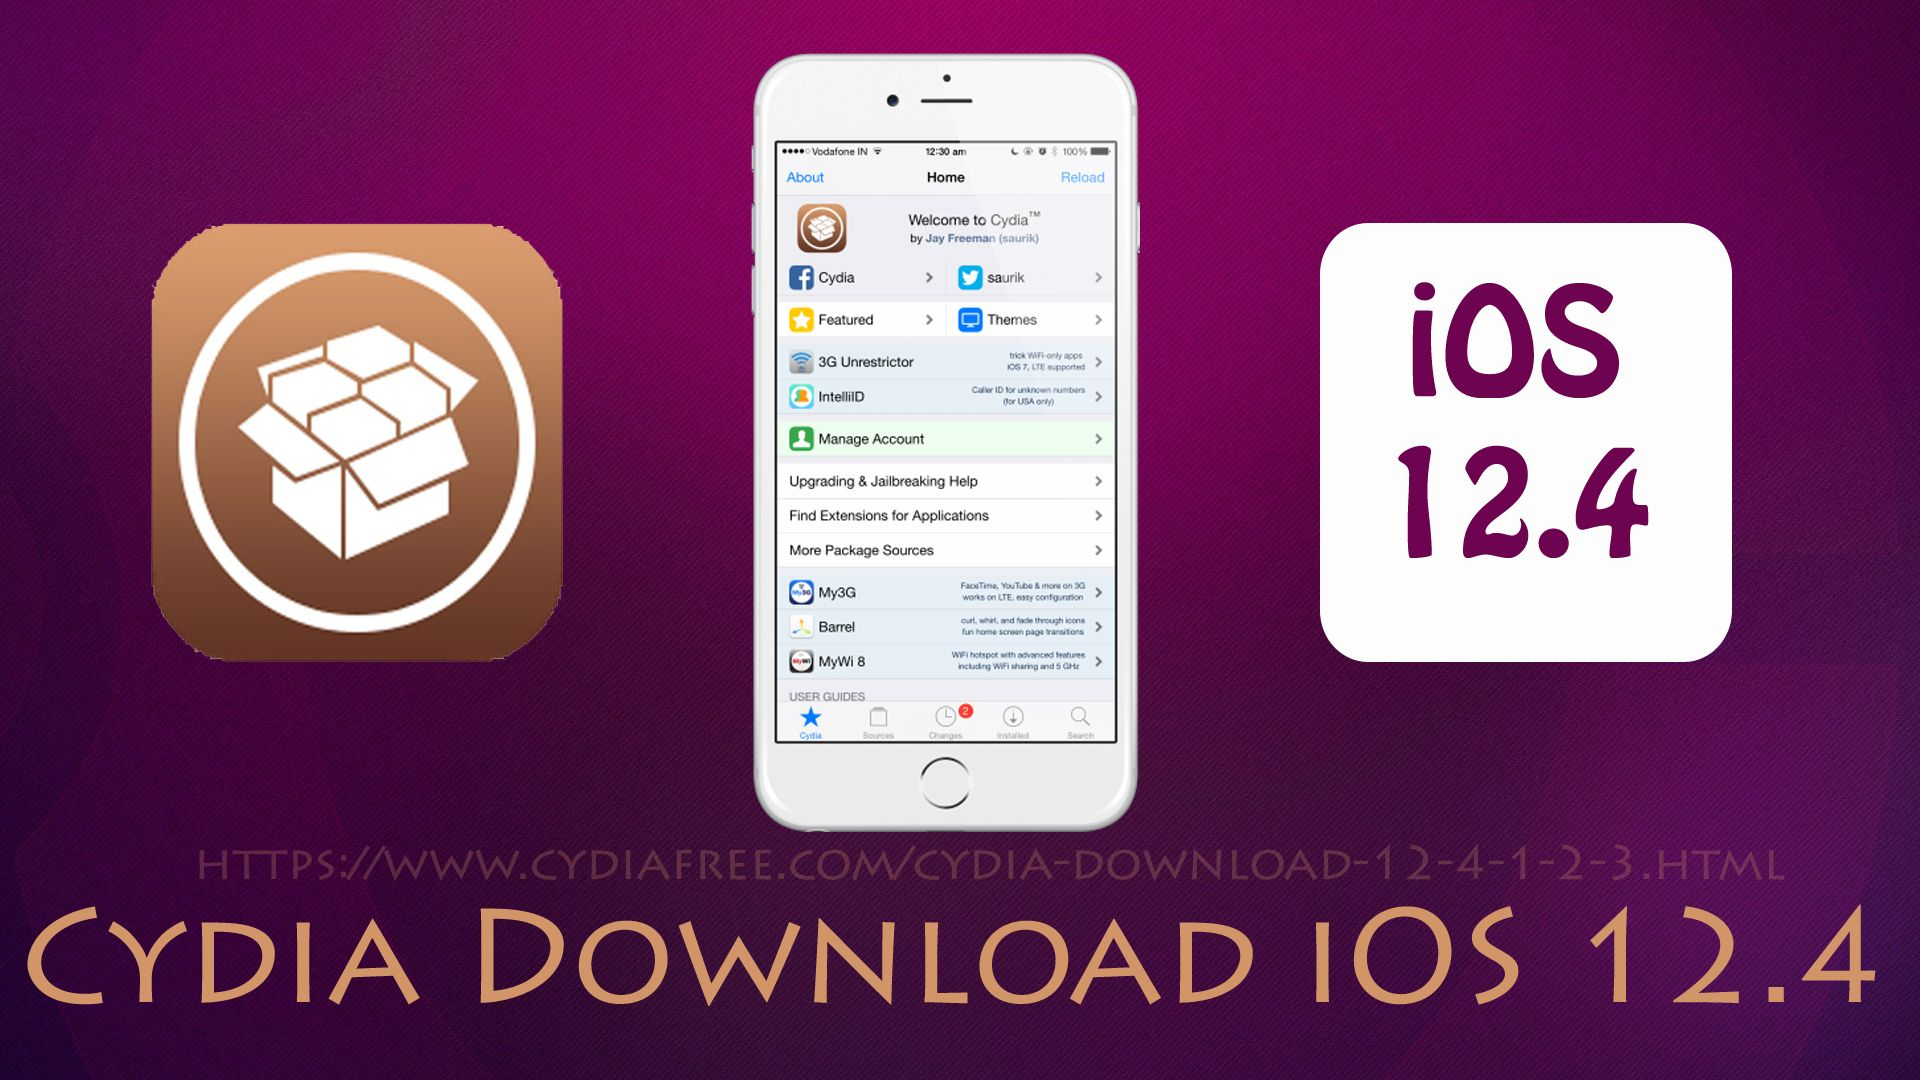 Cydia Download iOS 12.4 has the latest thirdparty apps